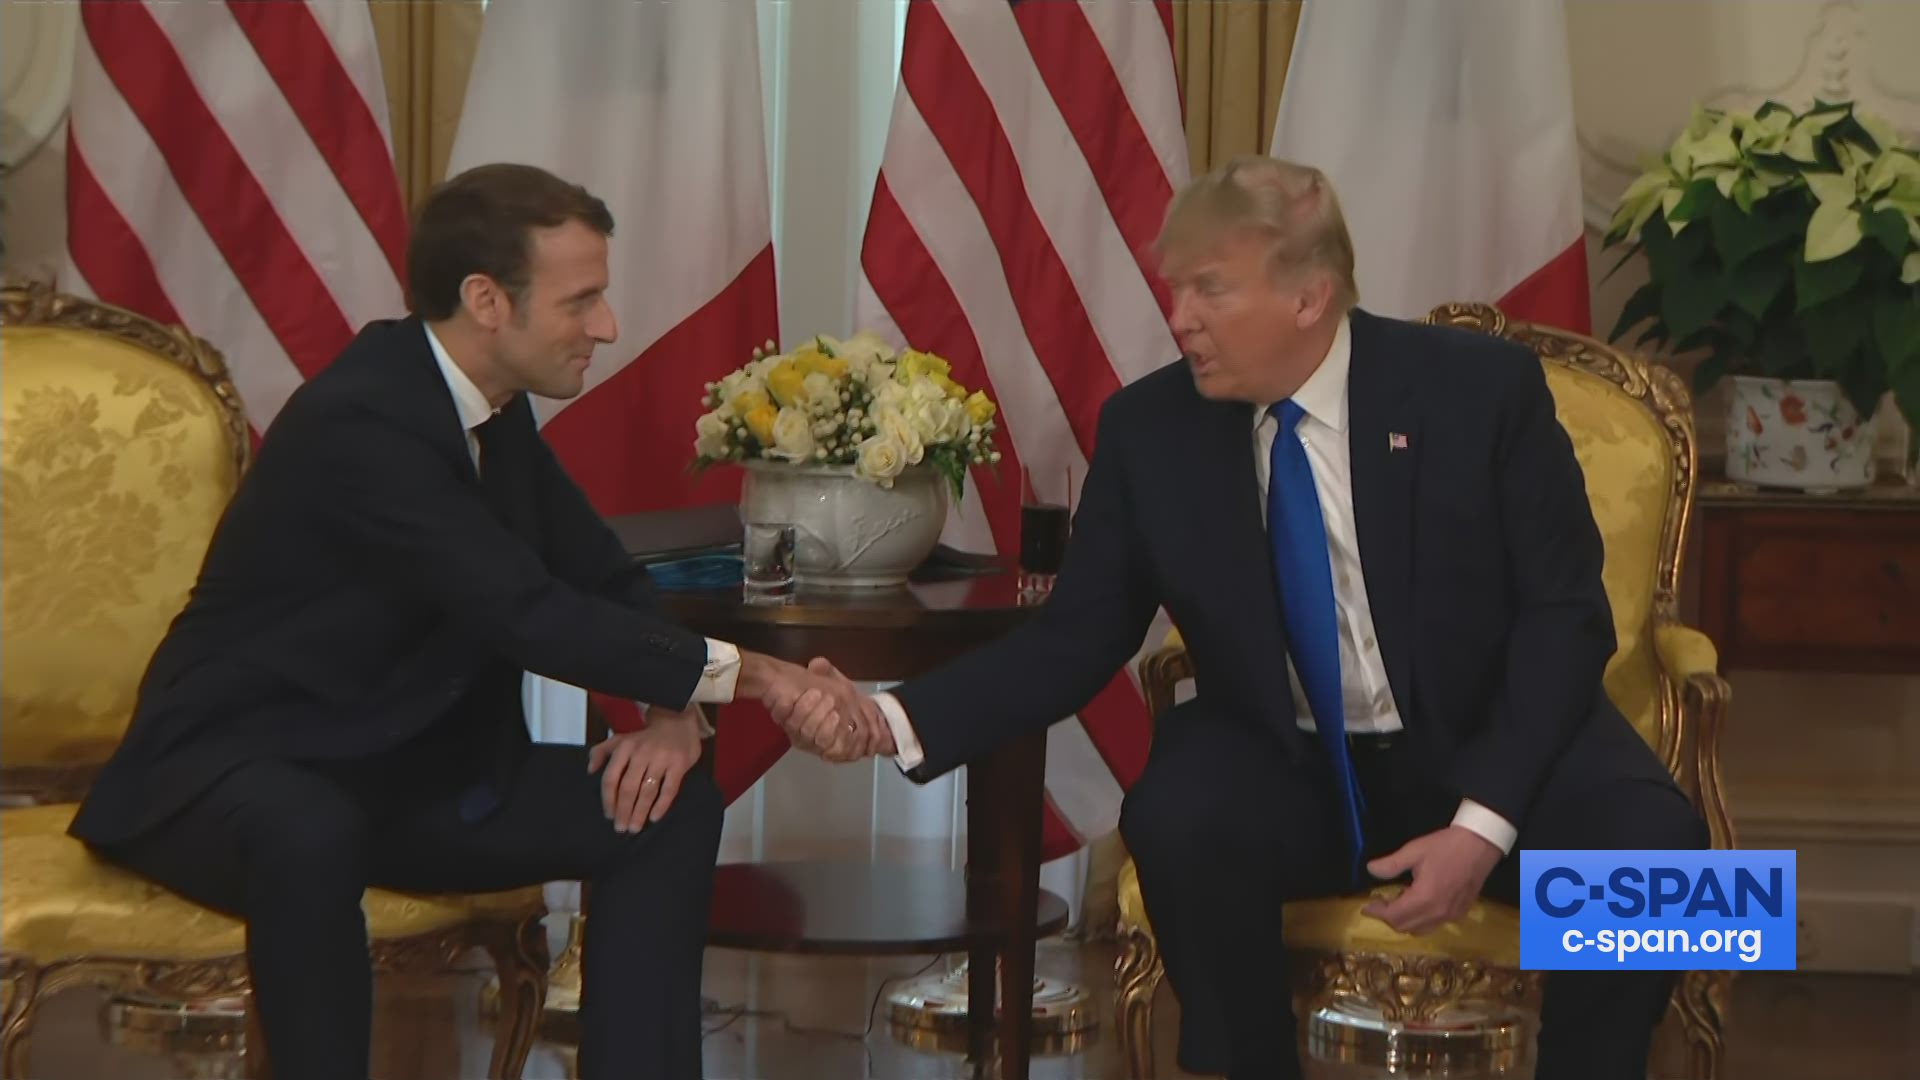 President Trump And French President Macron Meeting At Nato Summit C Span Org